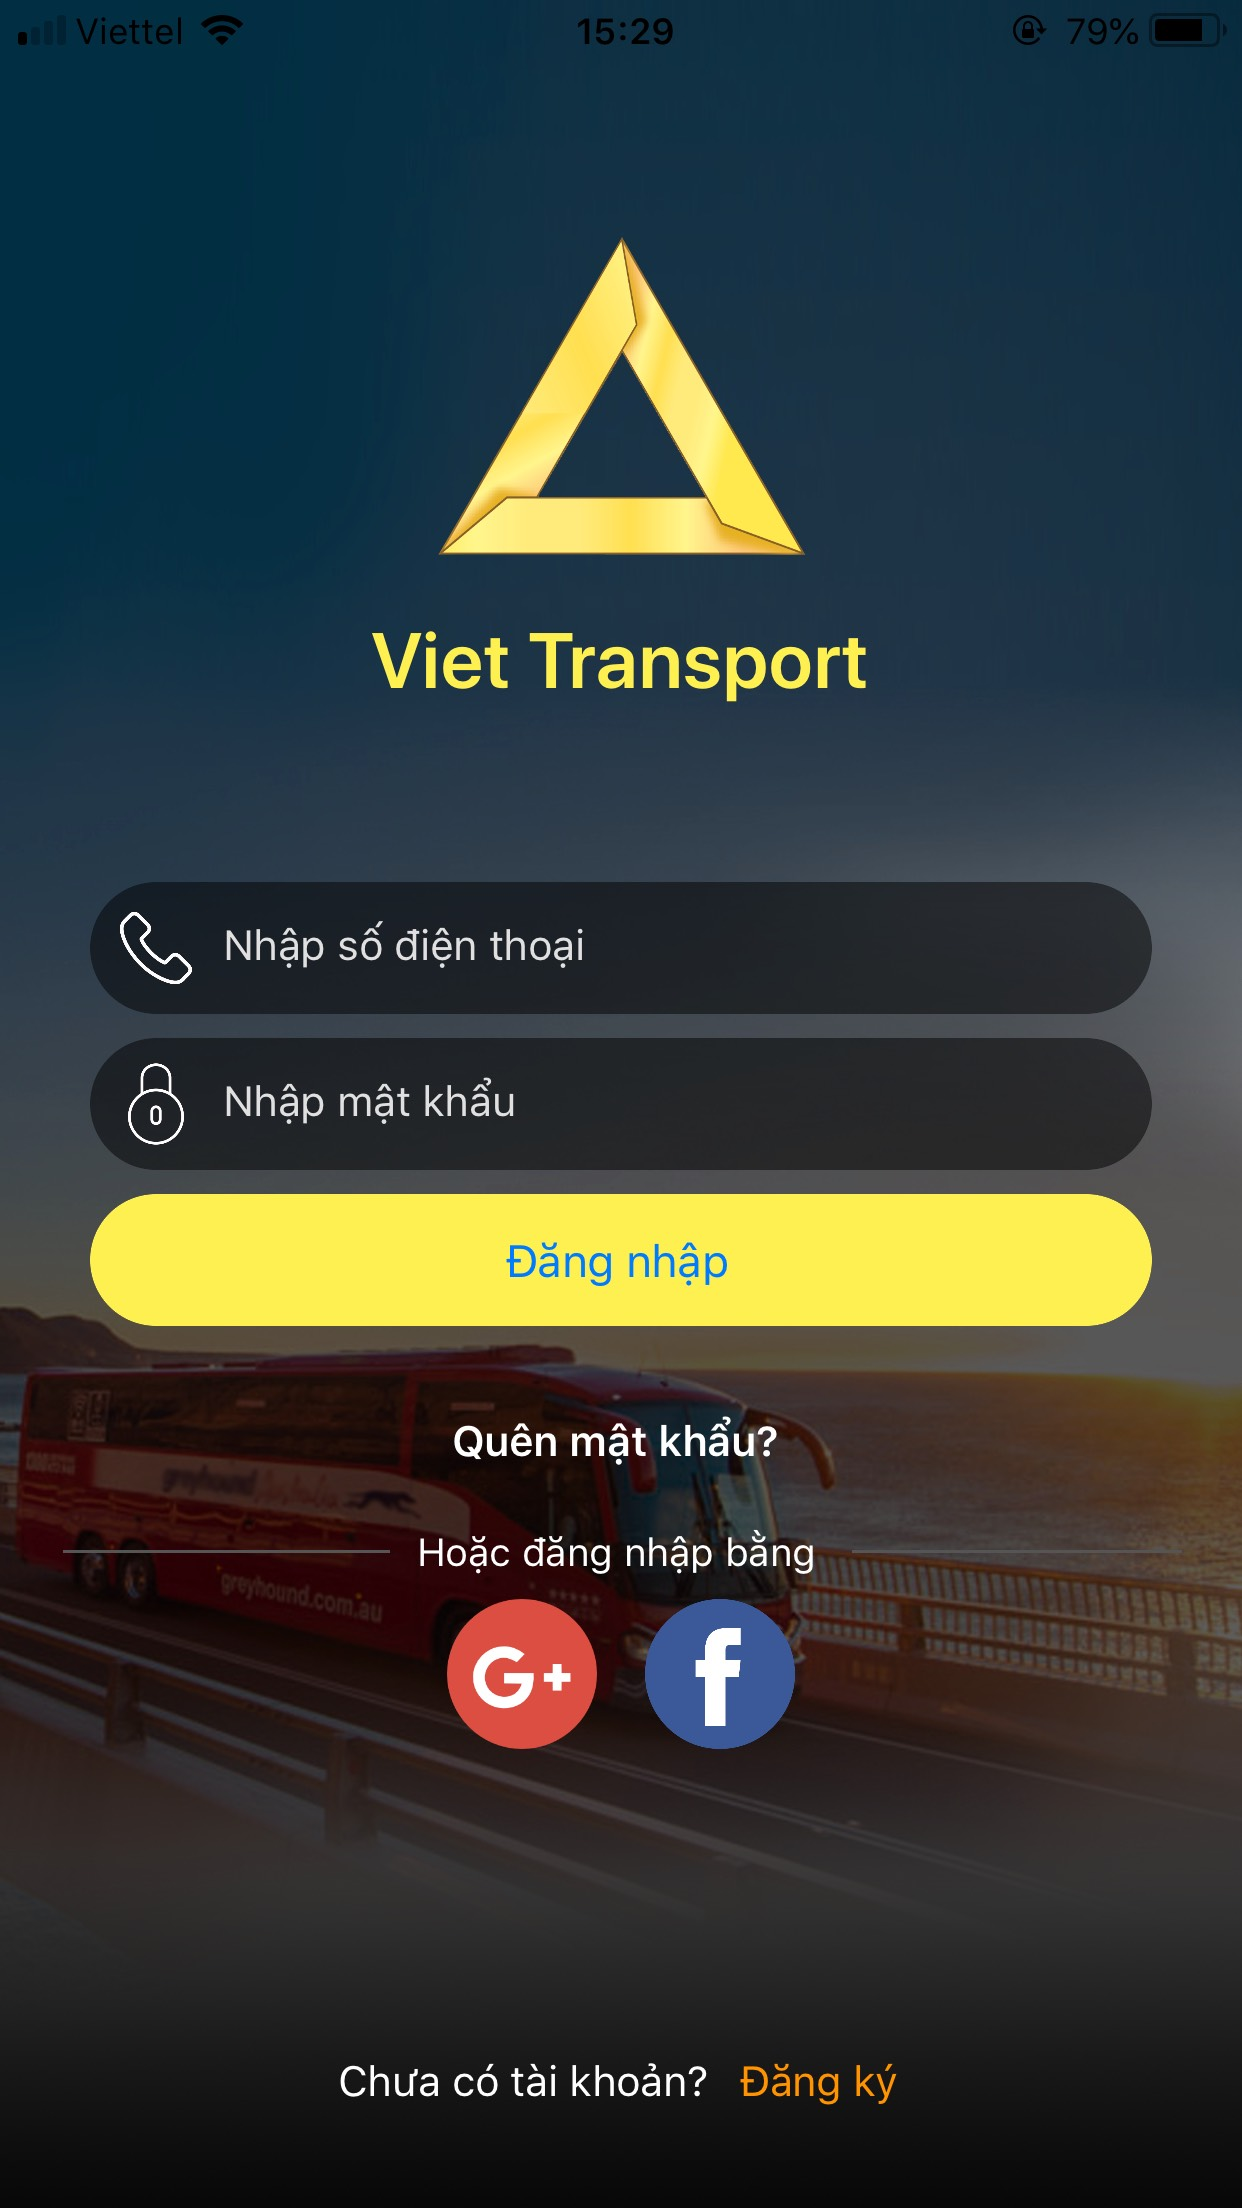 viet-transport